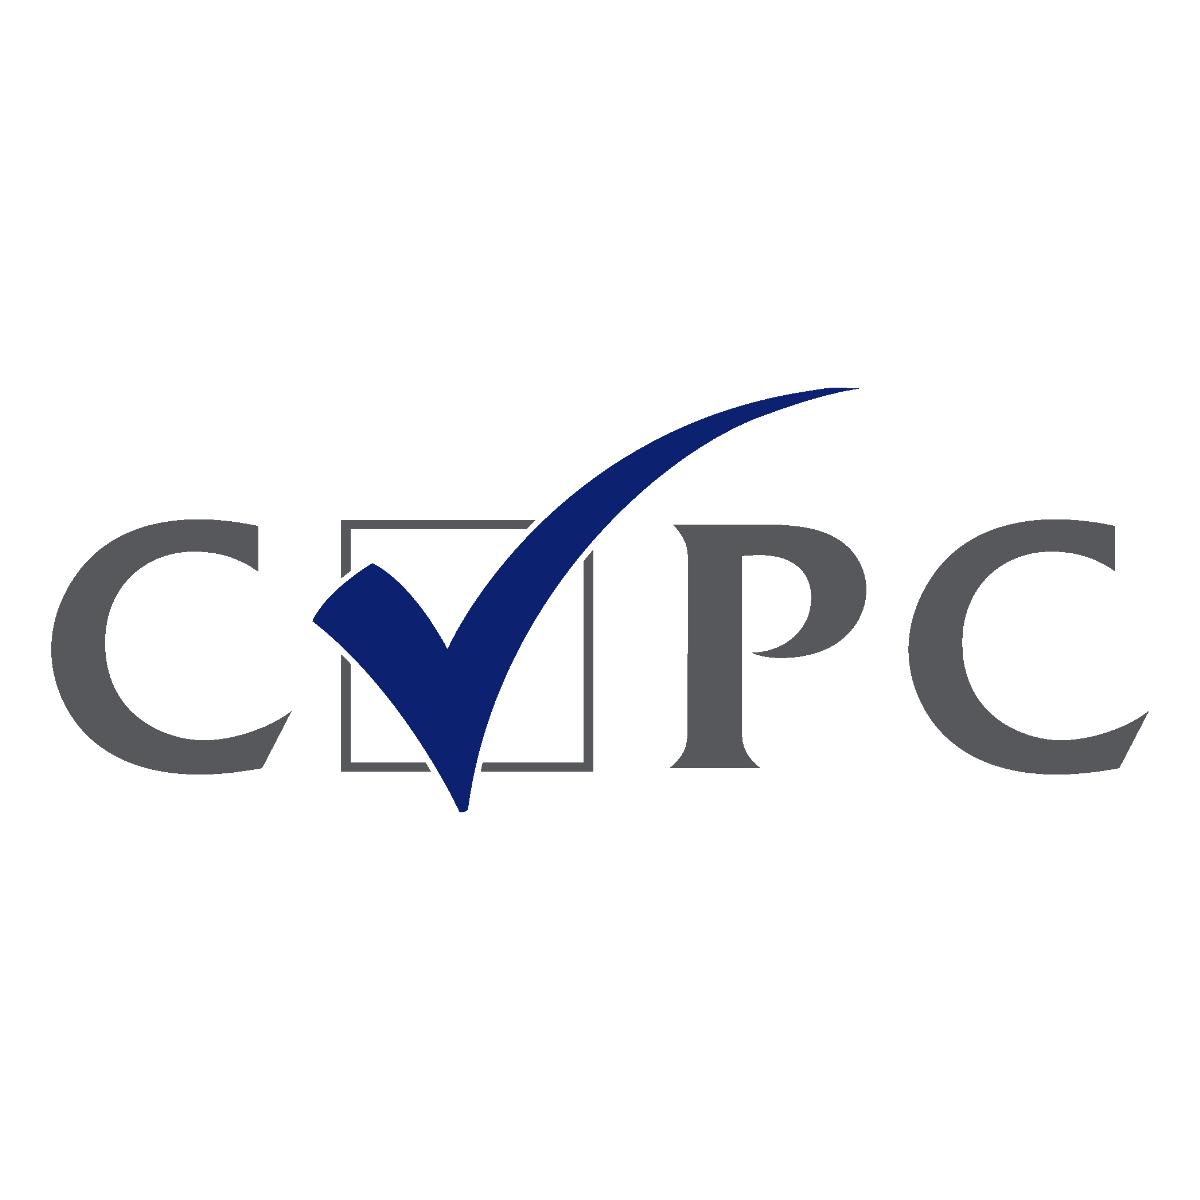 CVPC - Centre Valaisan de Perfectionnement Continu profile picture